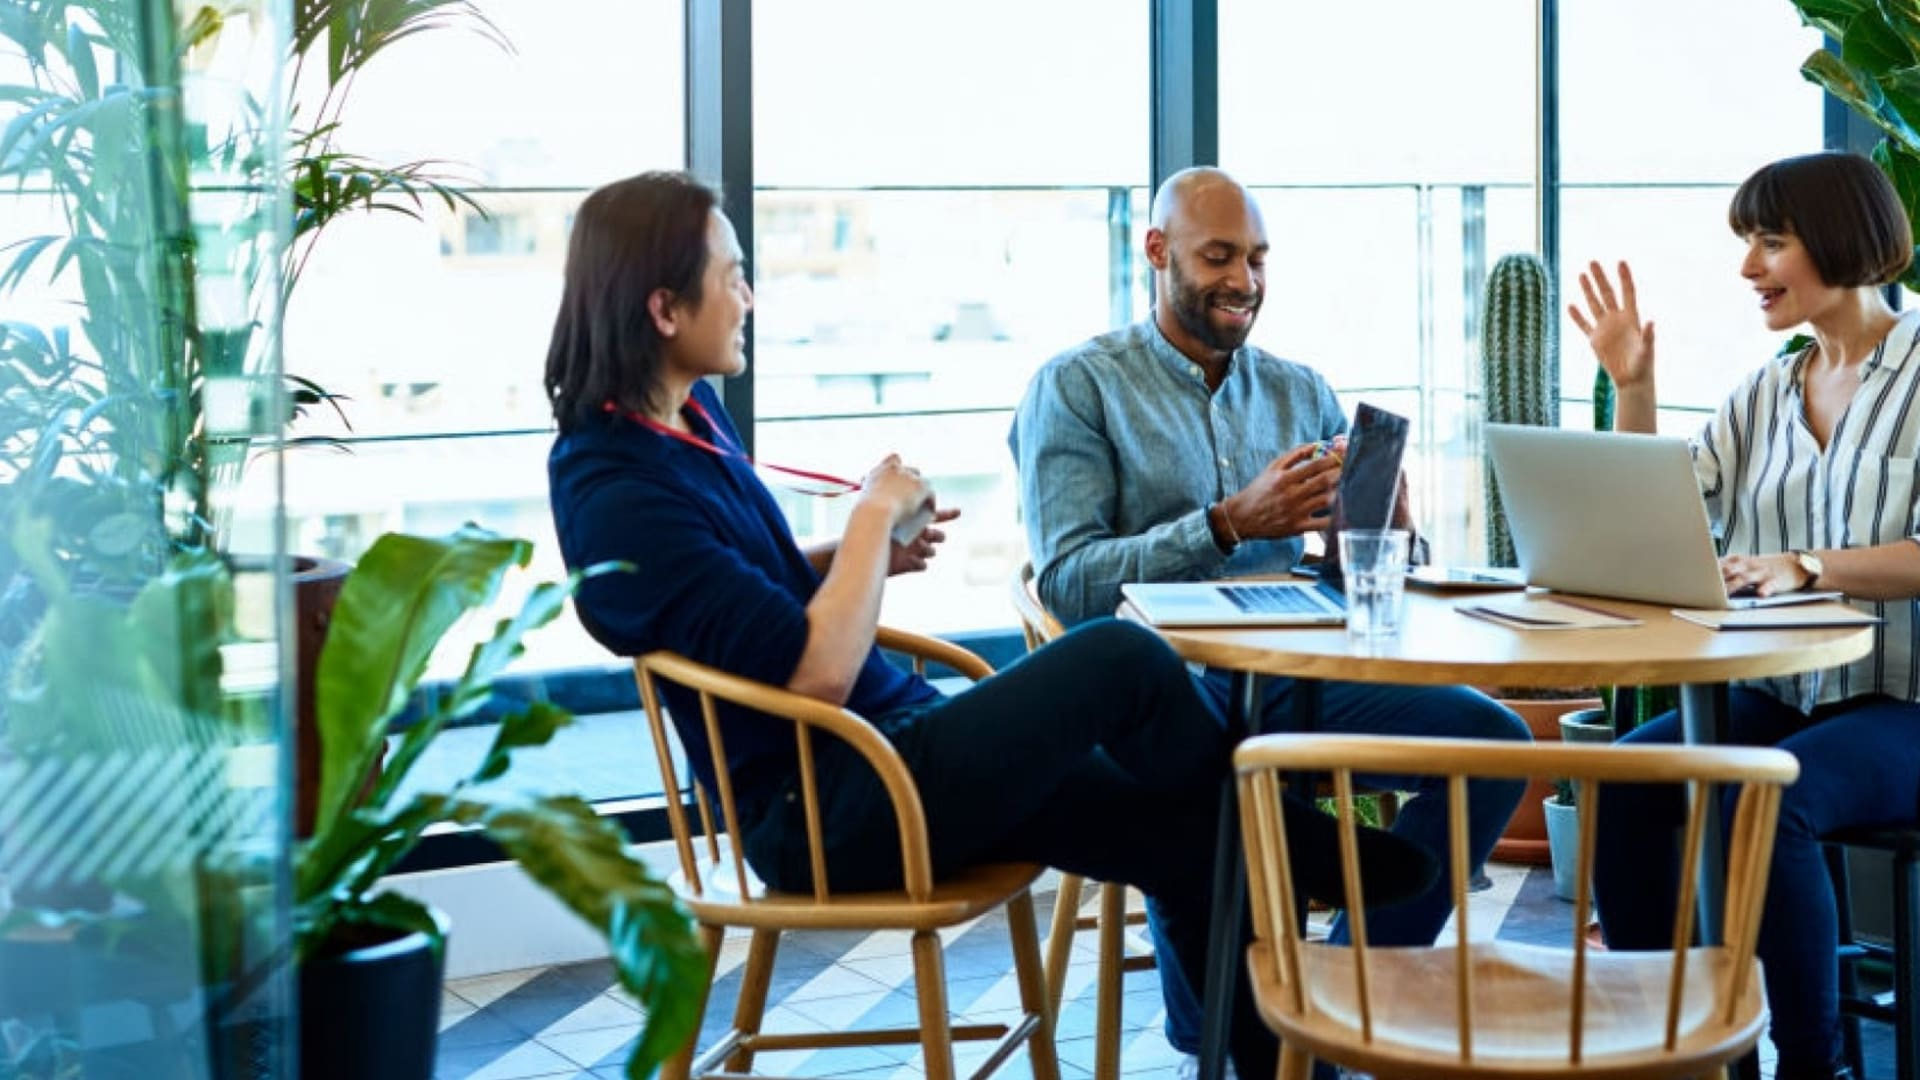 4 Ways Businesses Can Maximize Productivity for the Hybrid Workforce